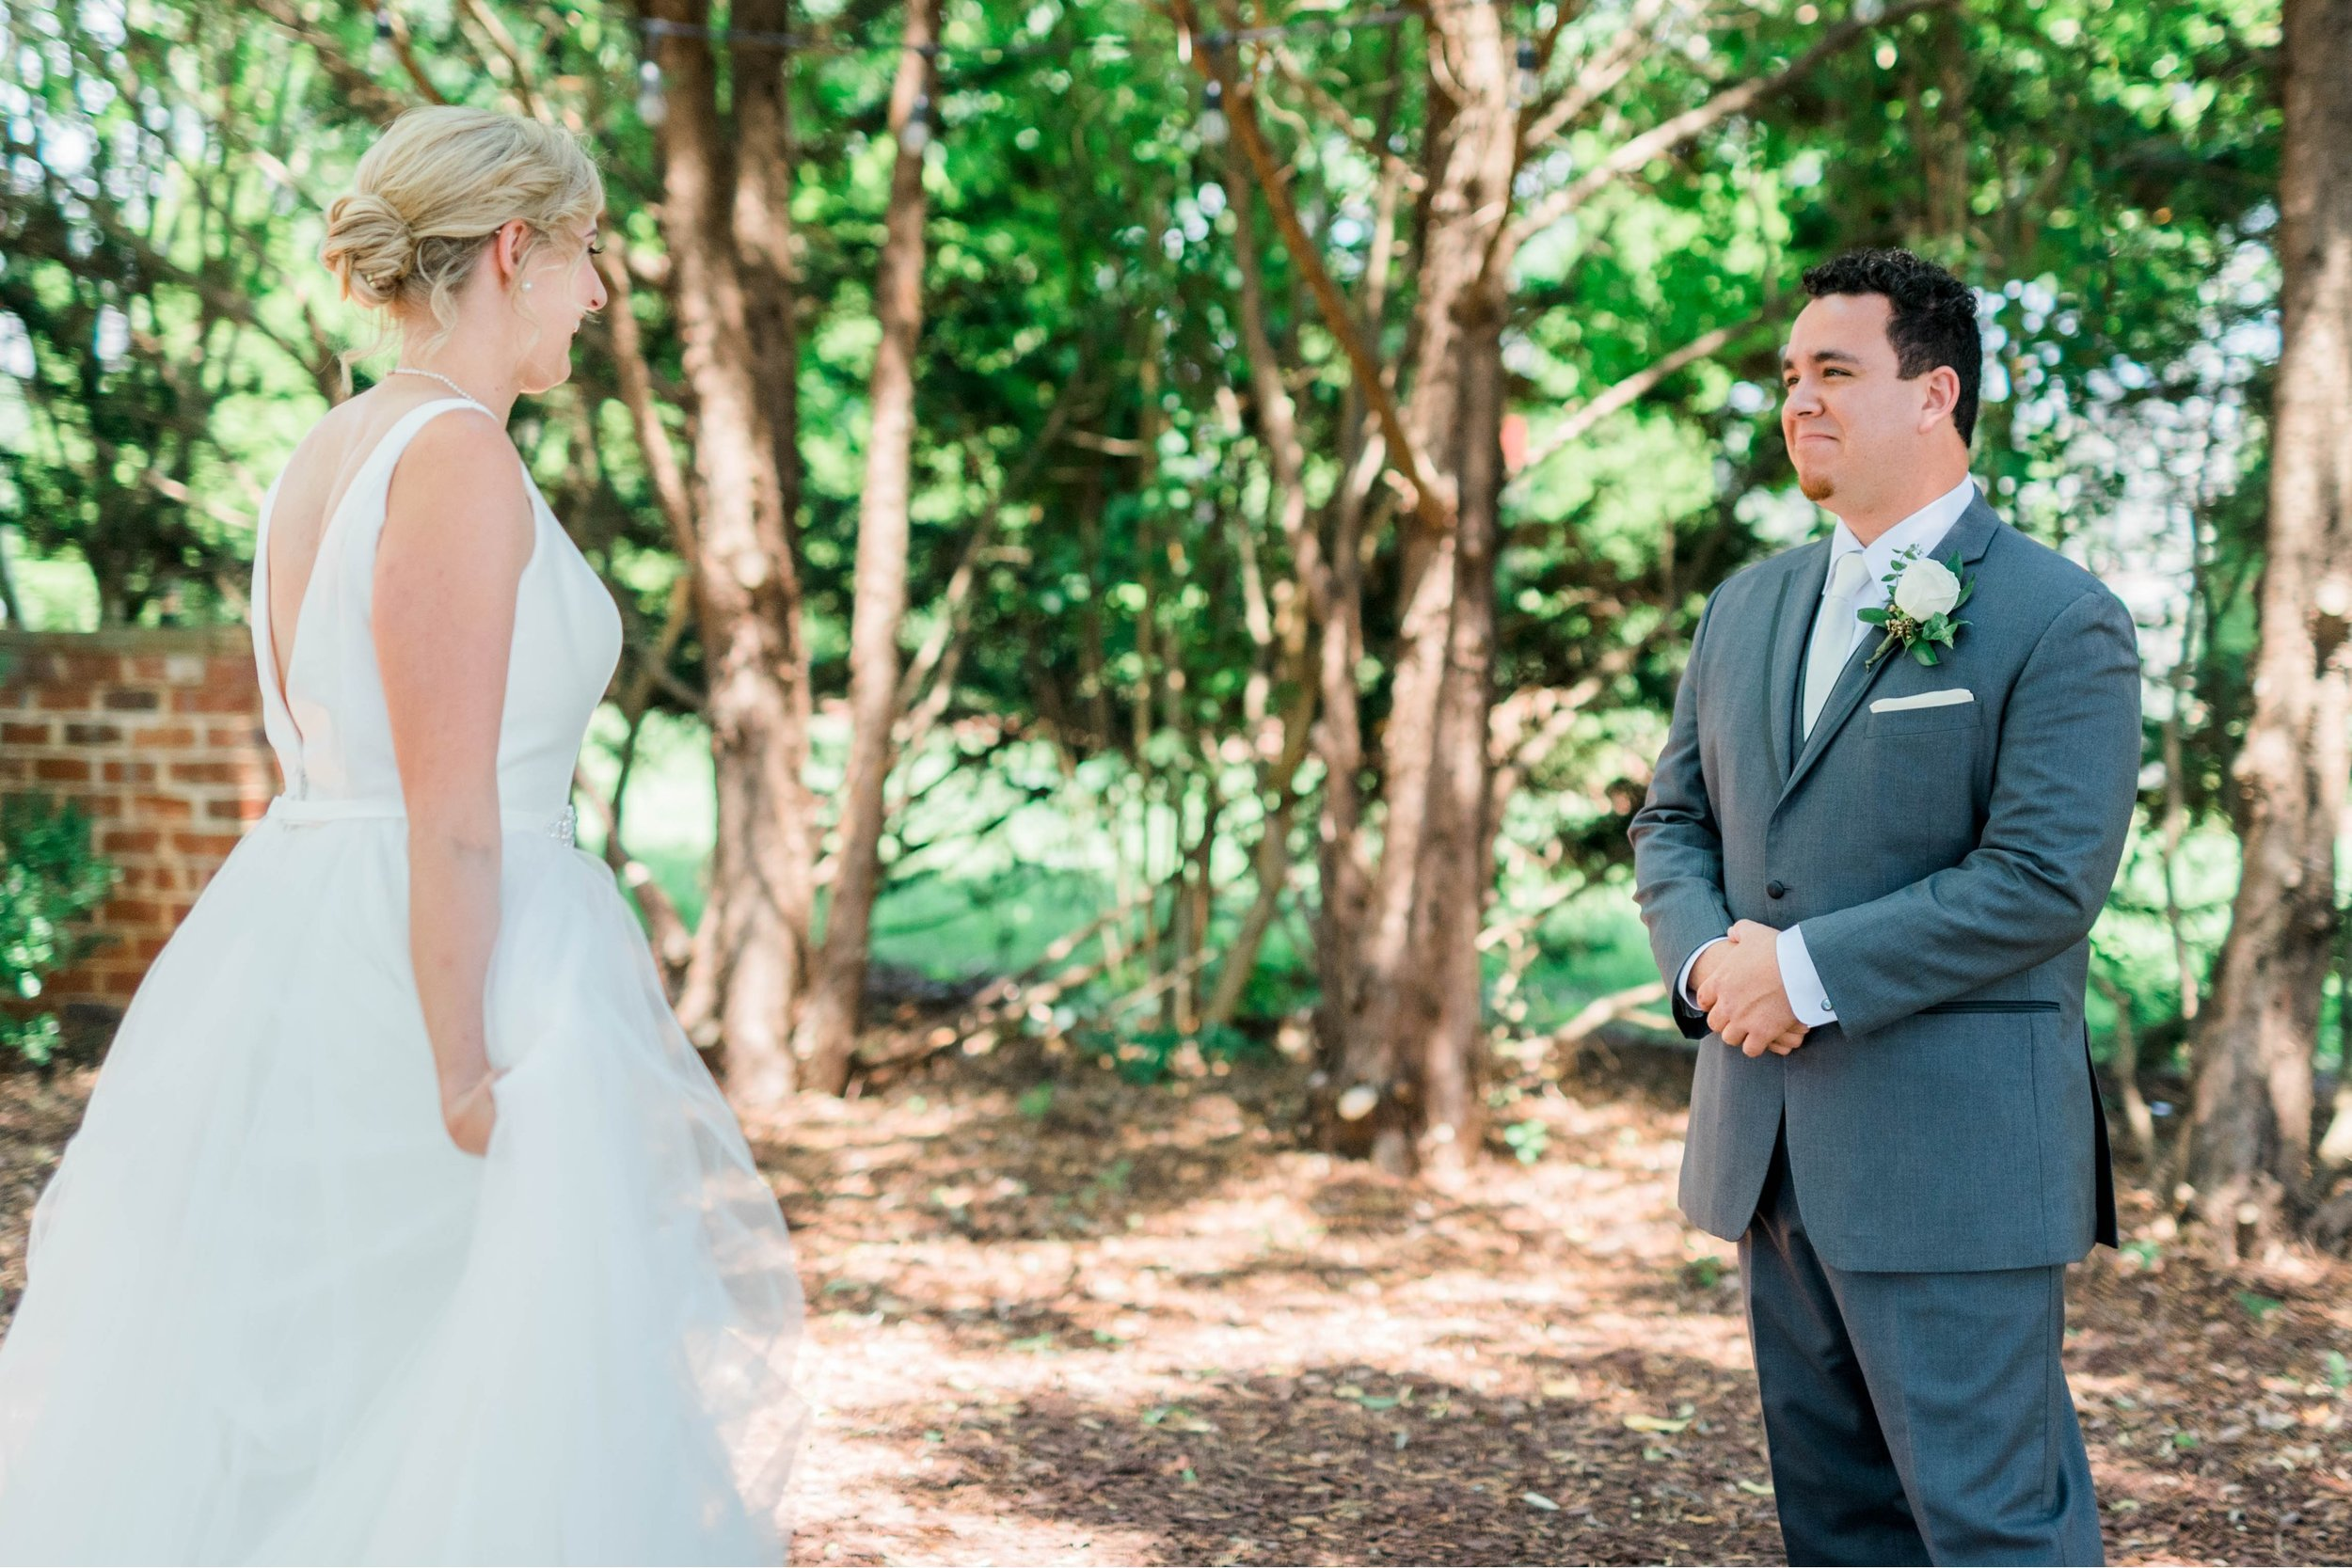 westmanorestate_entwinedevents_lynchburgweddingphotographer_Virginiaweddingphotographer_kateyam 25.jpg